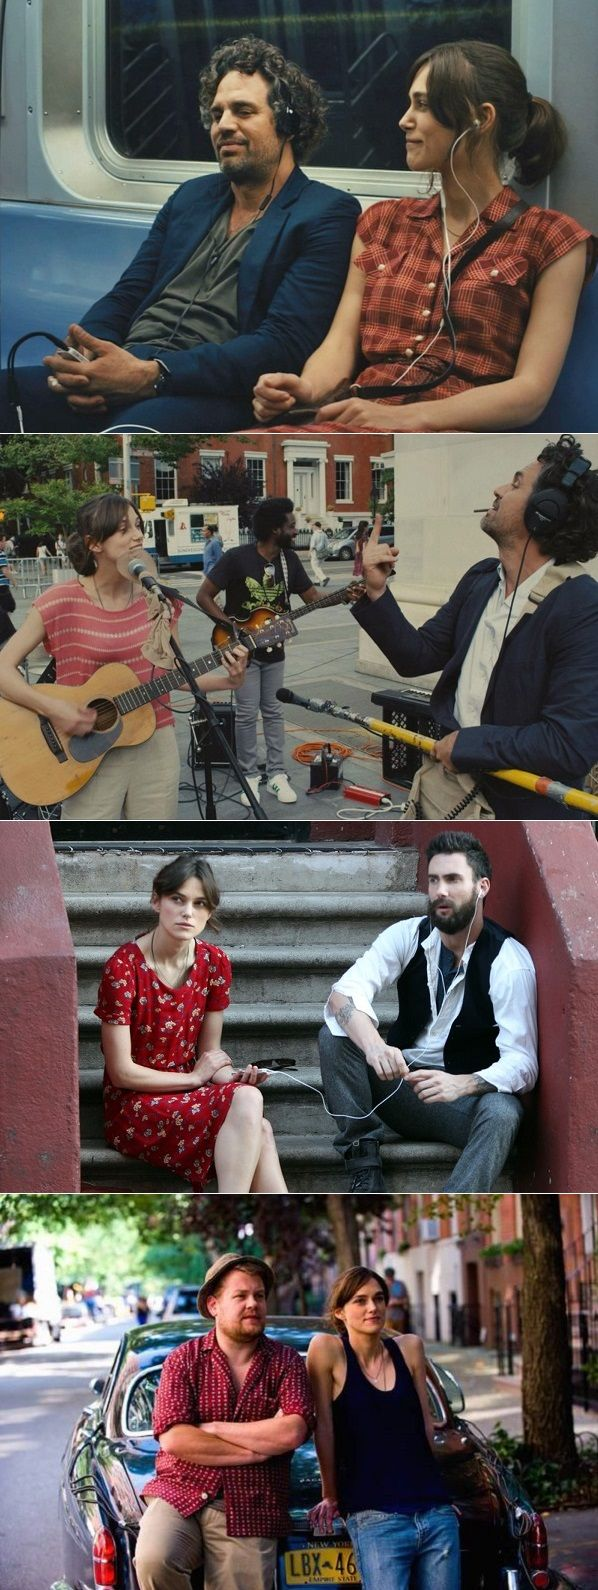 Have you seen the 2013 romantic comedy Begin Again?